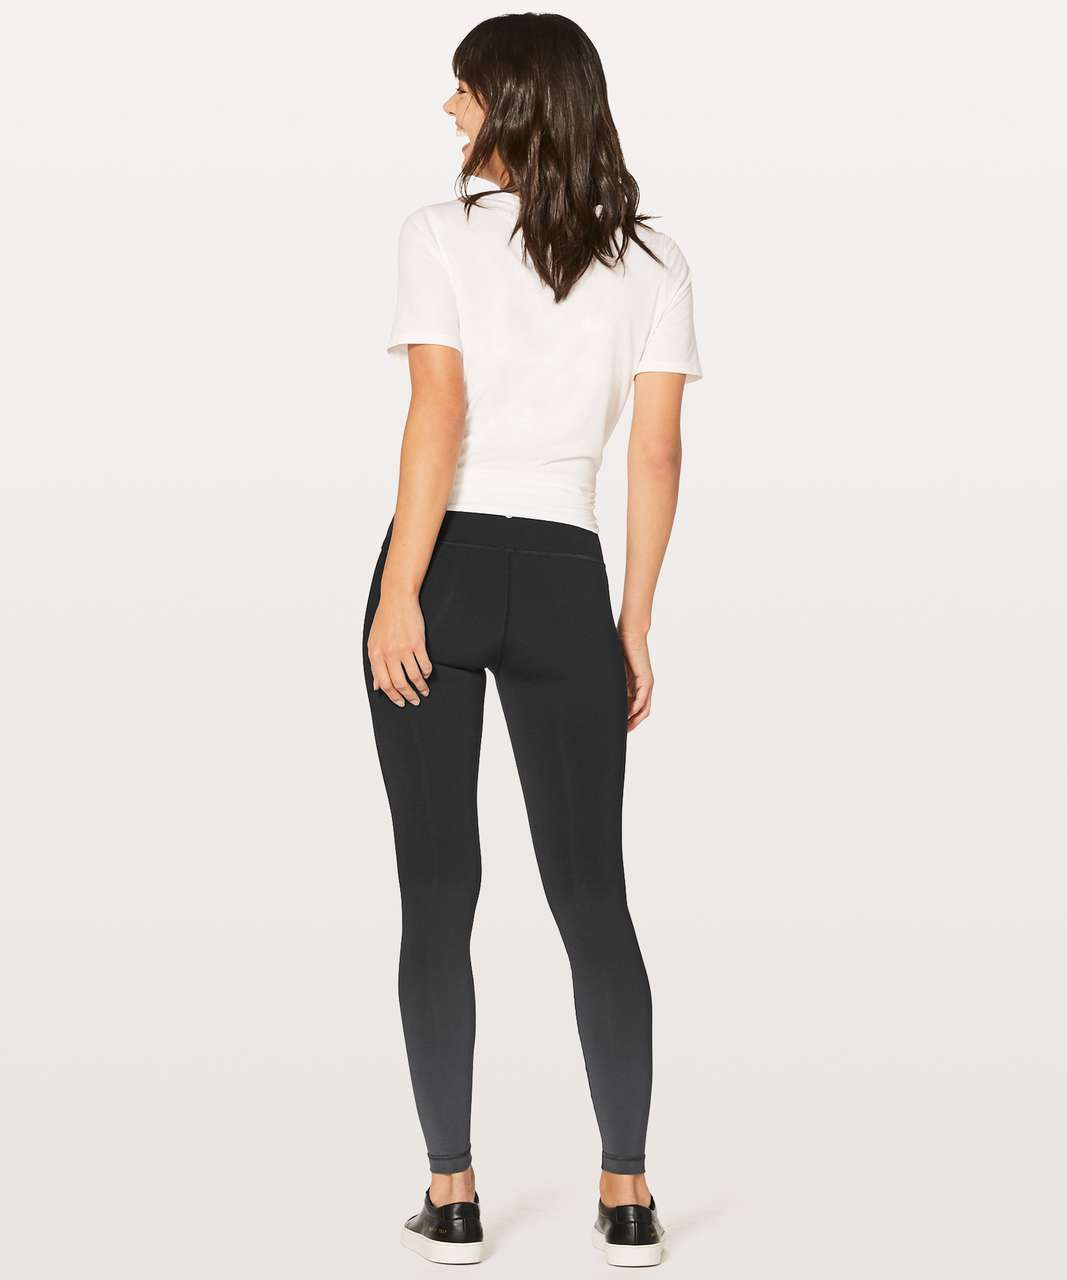 "Lululemon Wunder Under Hi-Rise Tight (Ombre) 28"" - Ombre Black"